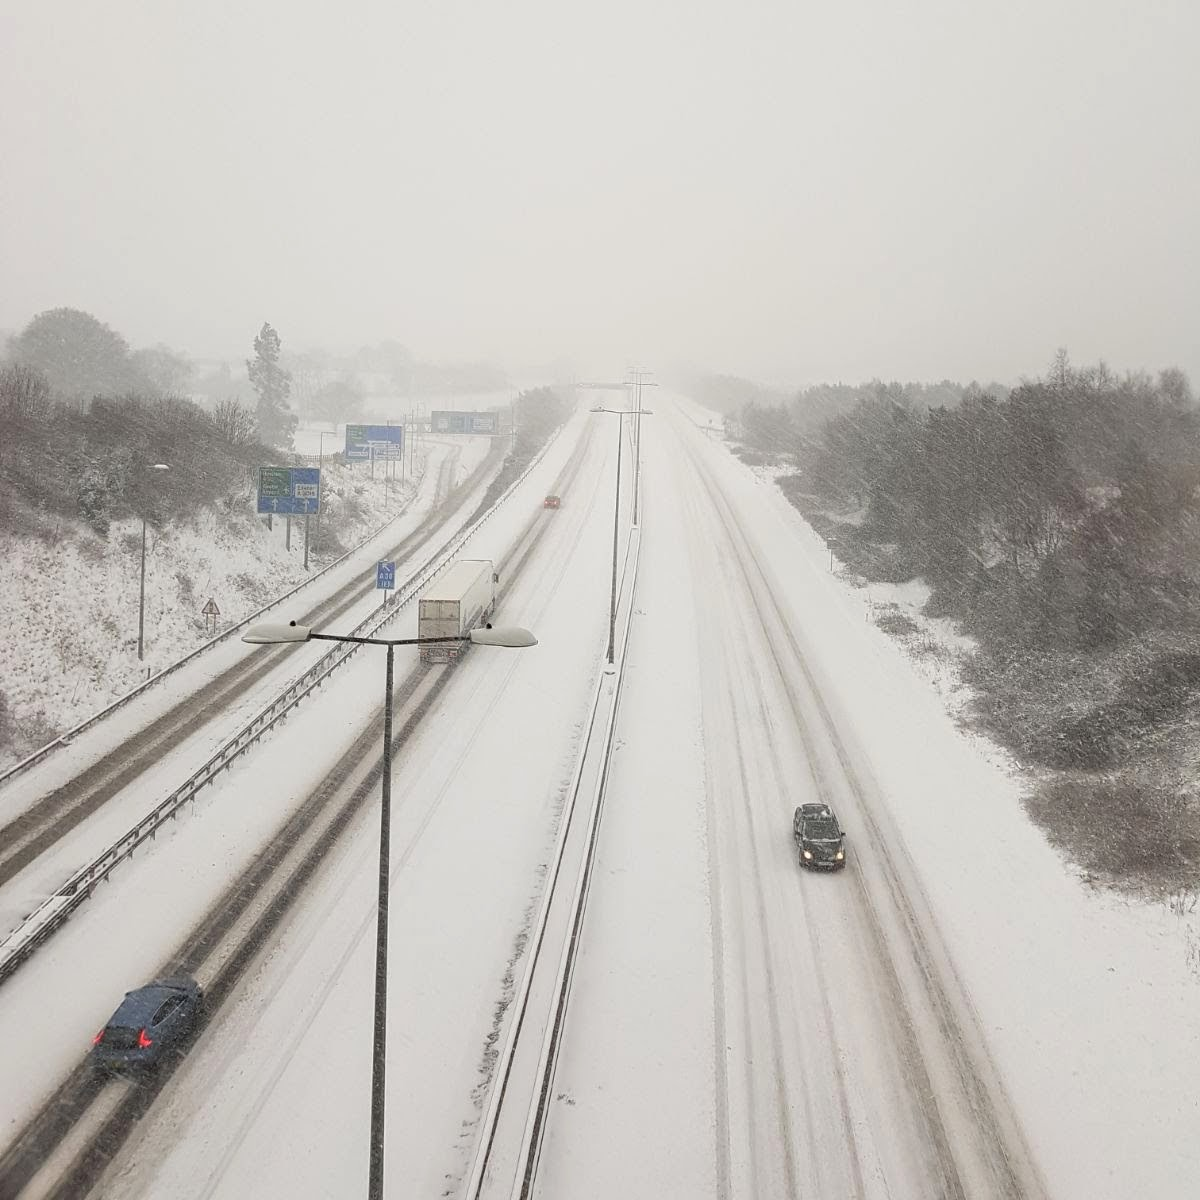 Snow covering the M5 near Junction 29 looking northbound